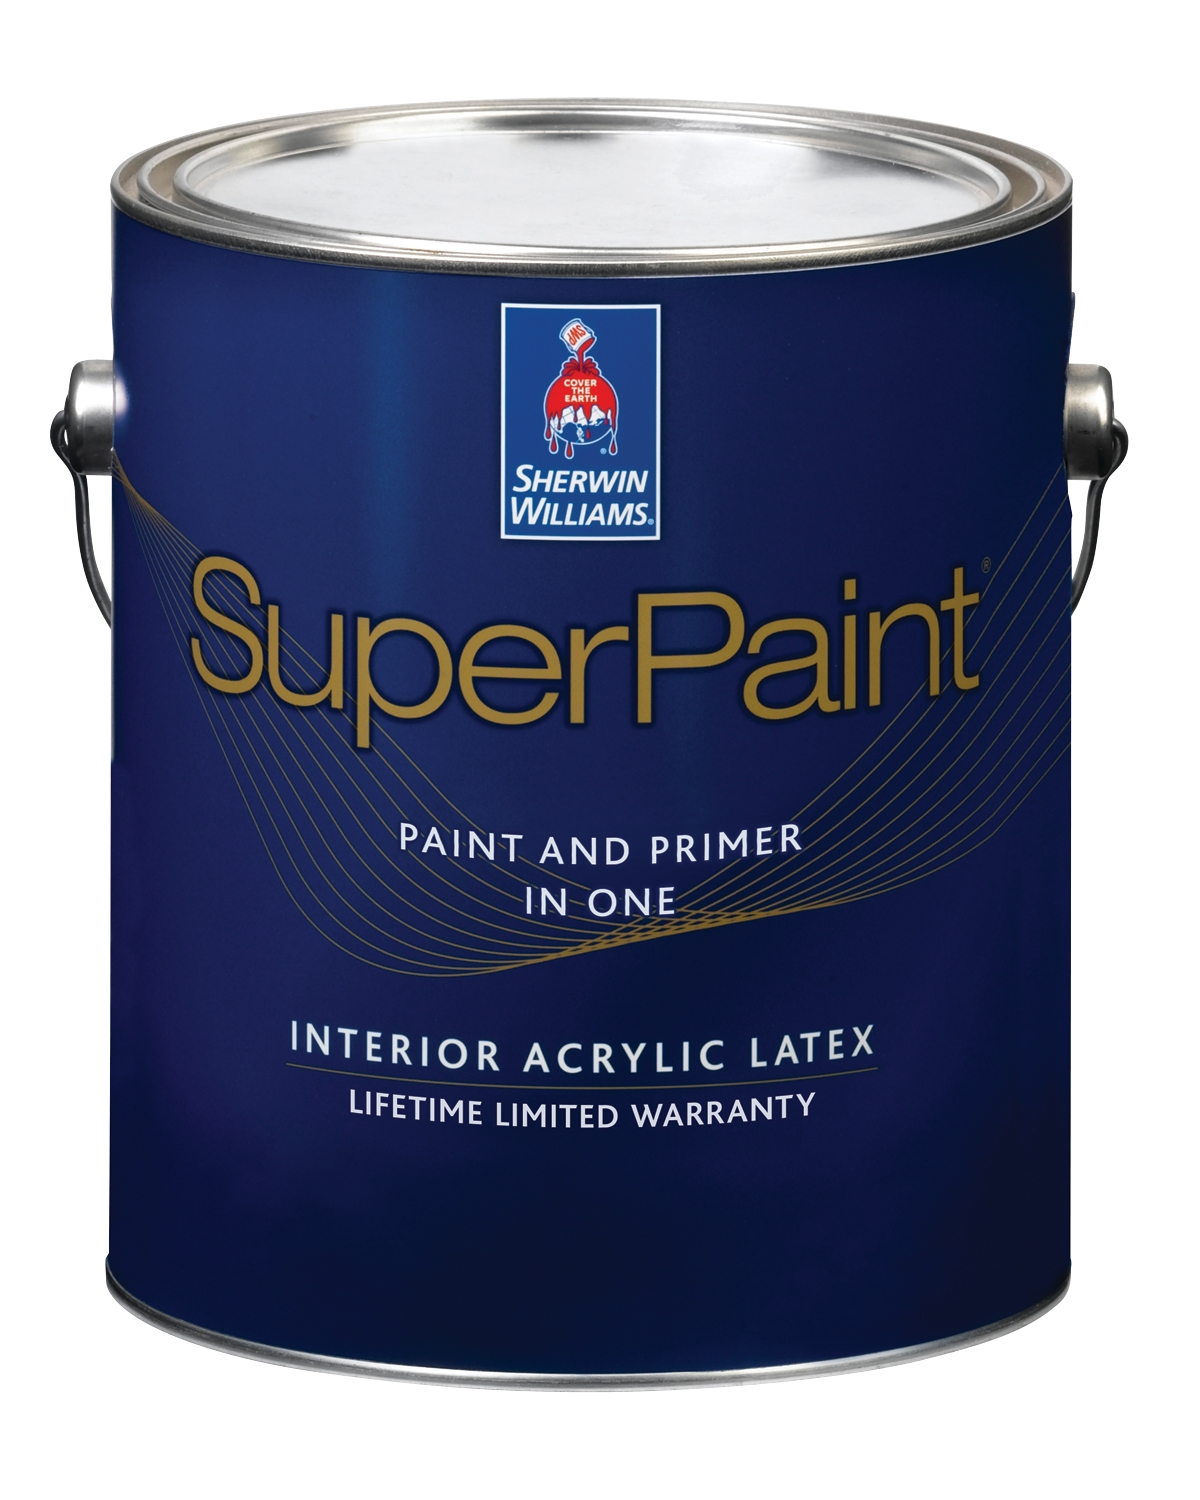 SuperPaint® Interior Acrylic Latex